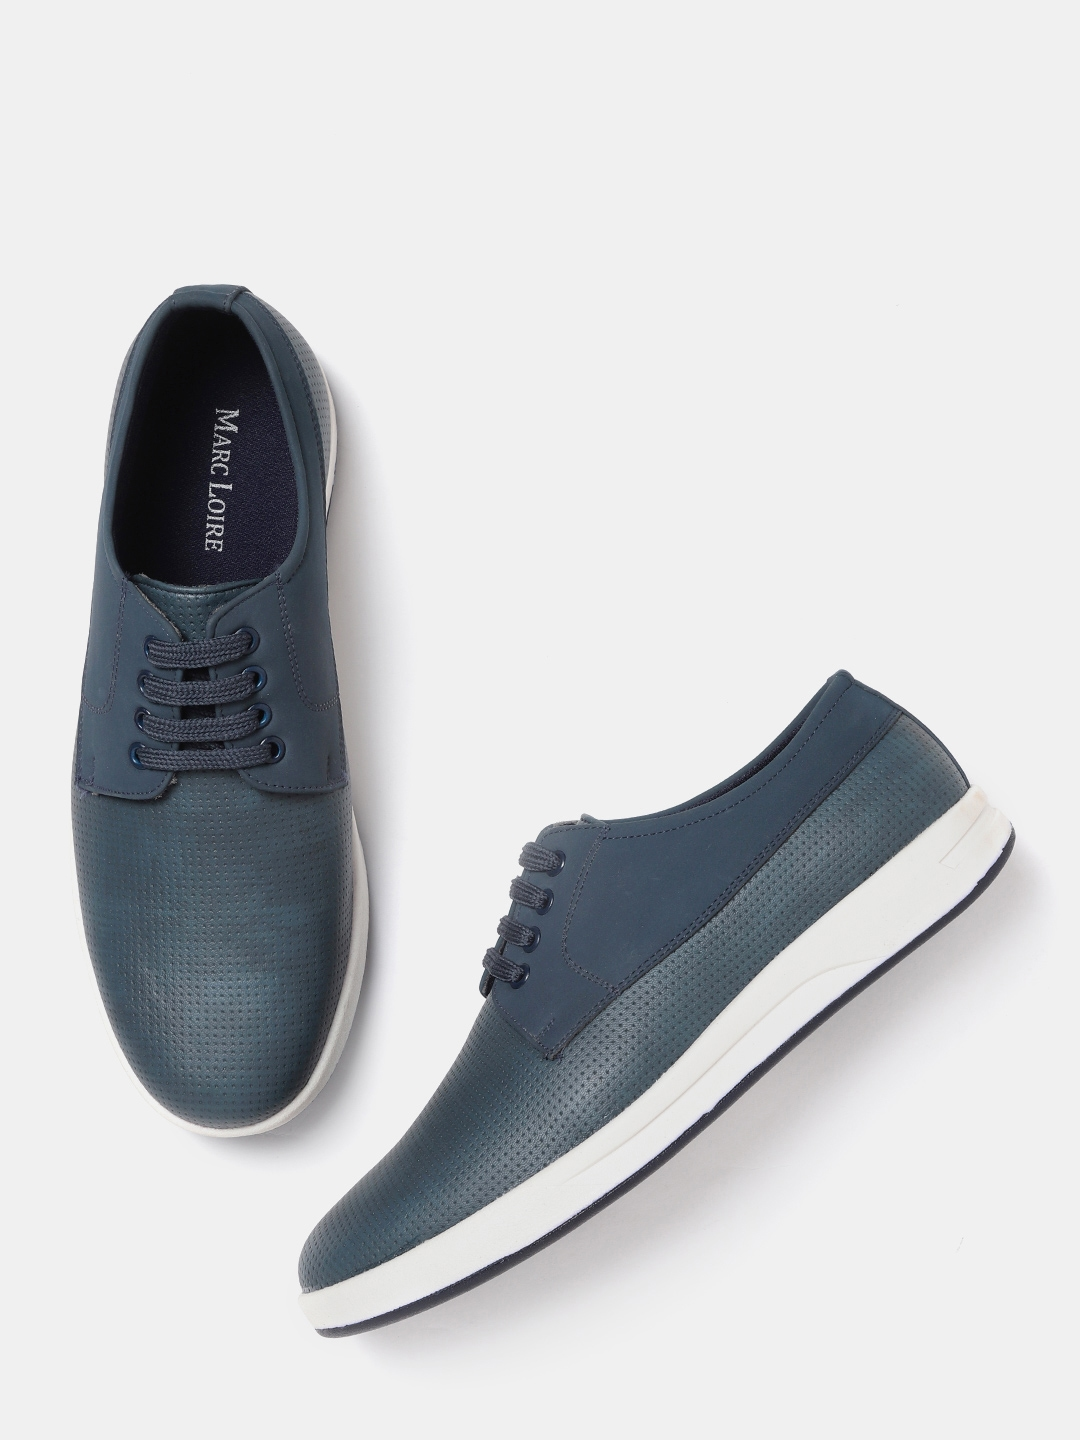 dba1fa821b3b Buy Marc Loire Men Navy Blue Textured Sneakers - Casual Shoes for ...